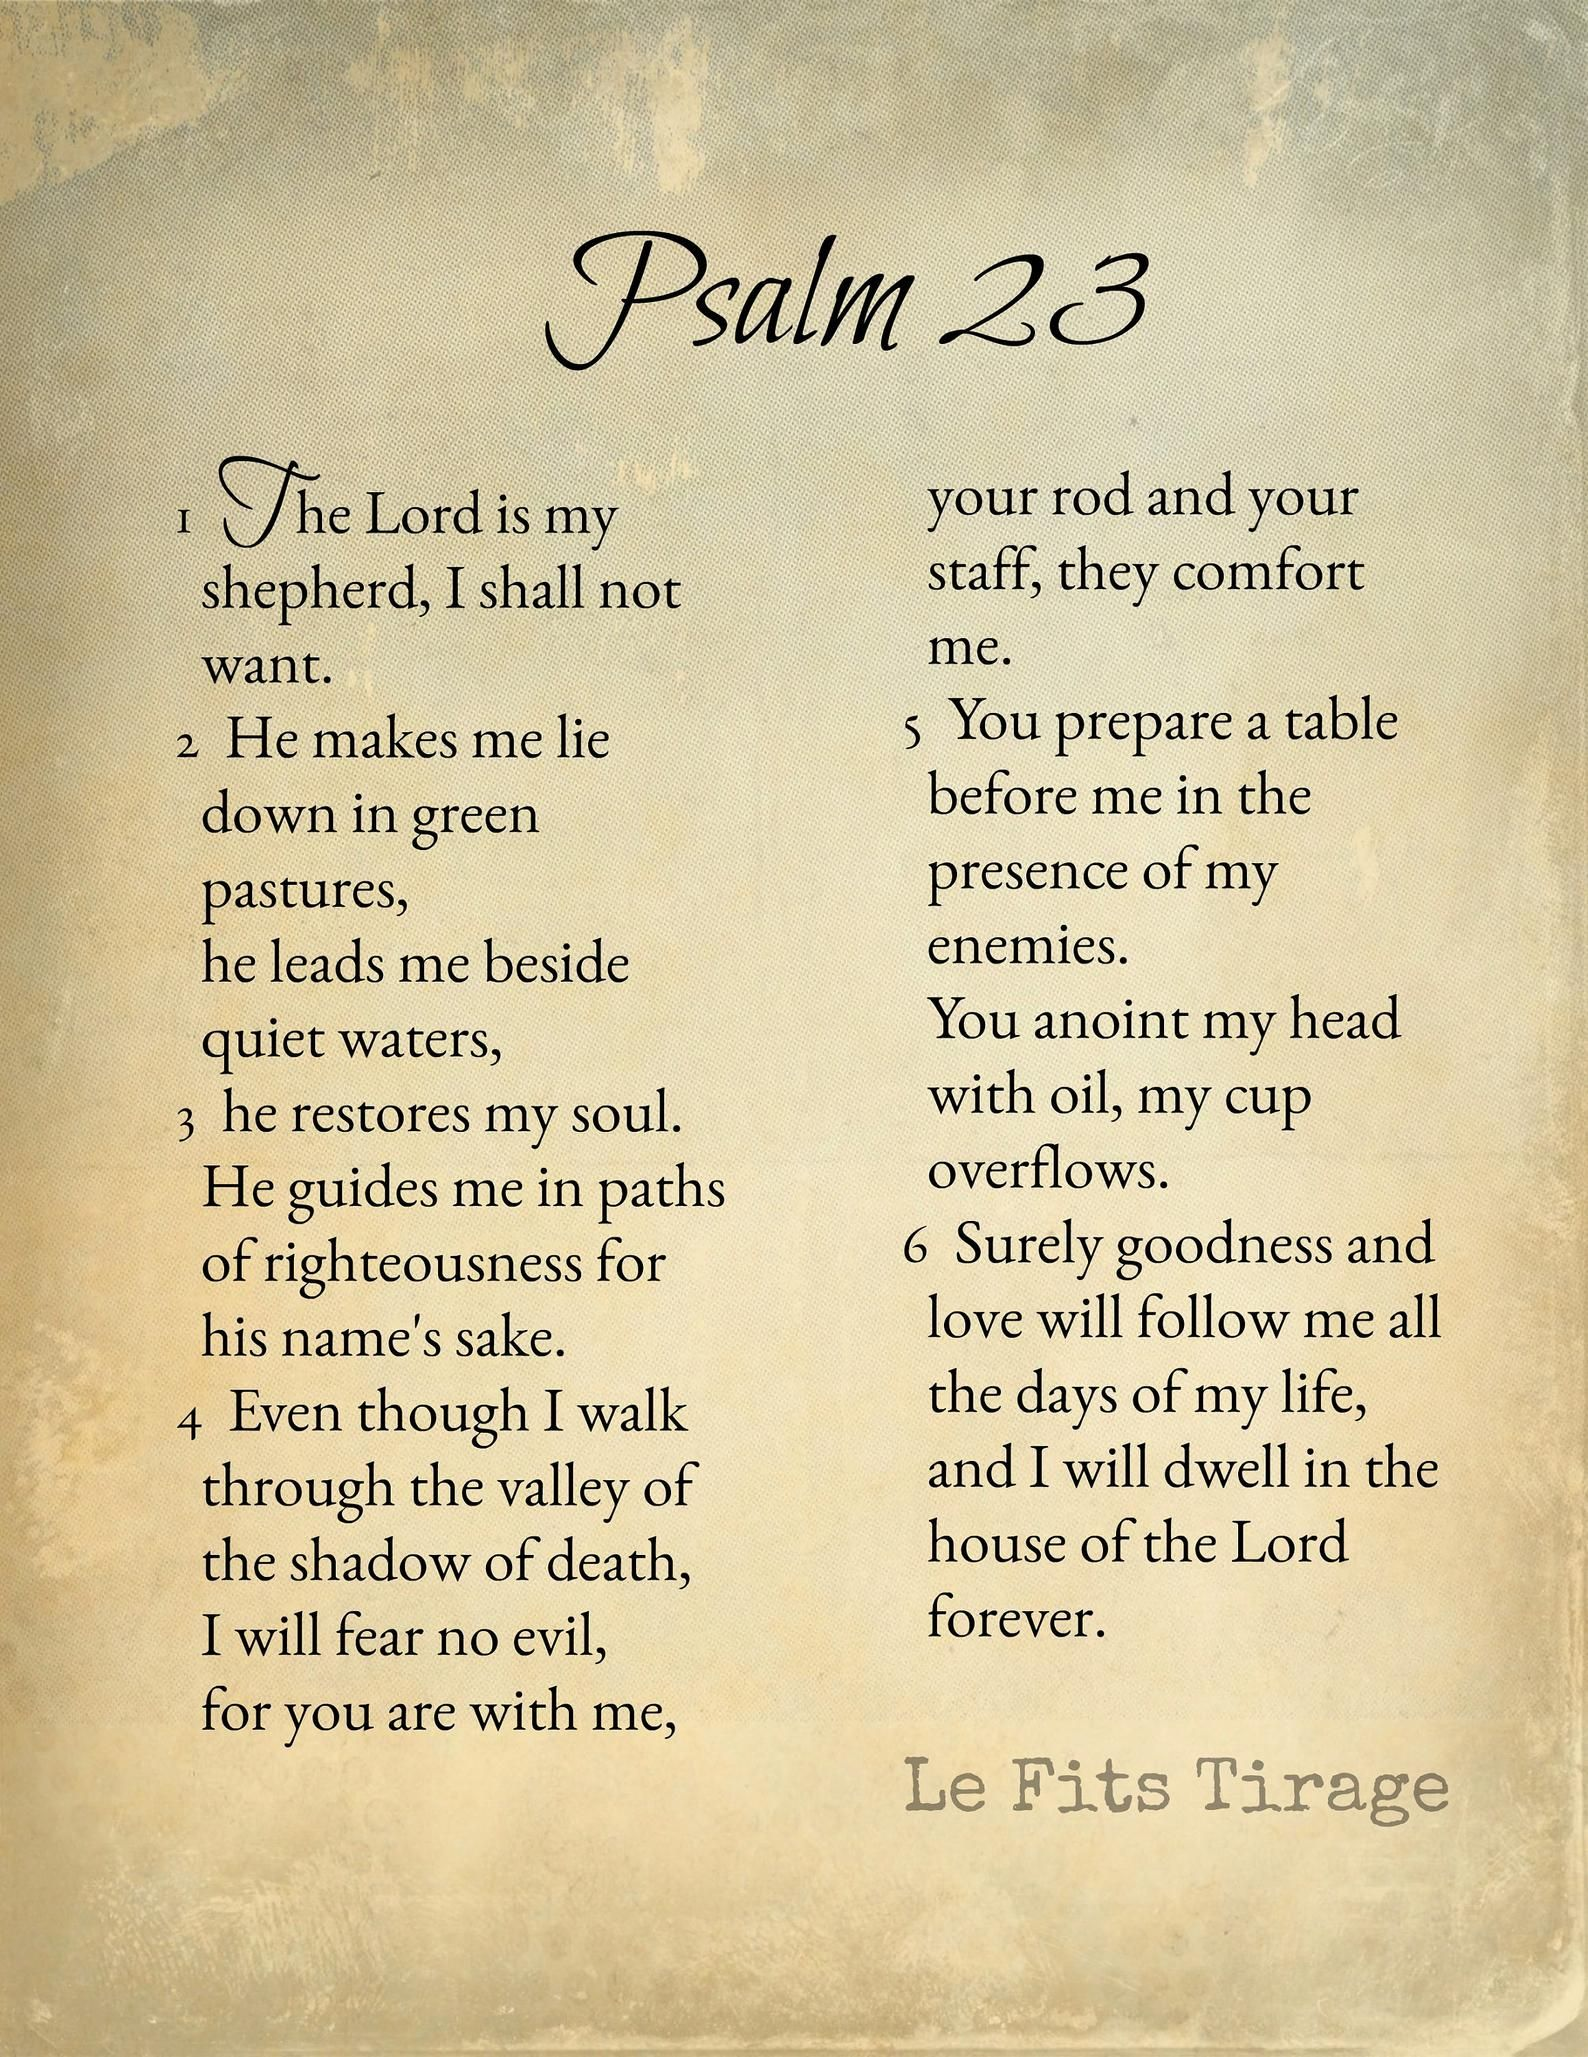 Psalm 23 Scripture The Lord Is My Shepherd Instant Download Print Poster 8x10 Sepia Vintage Themed Salmo 23 Salmo 23 4 Salmos